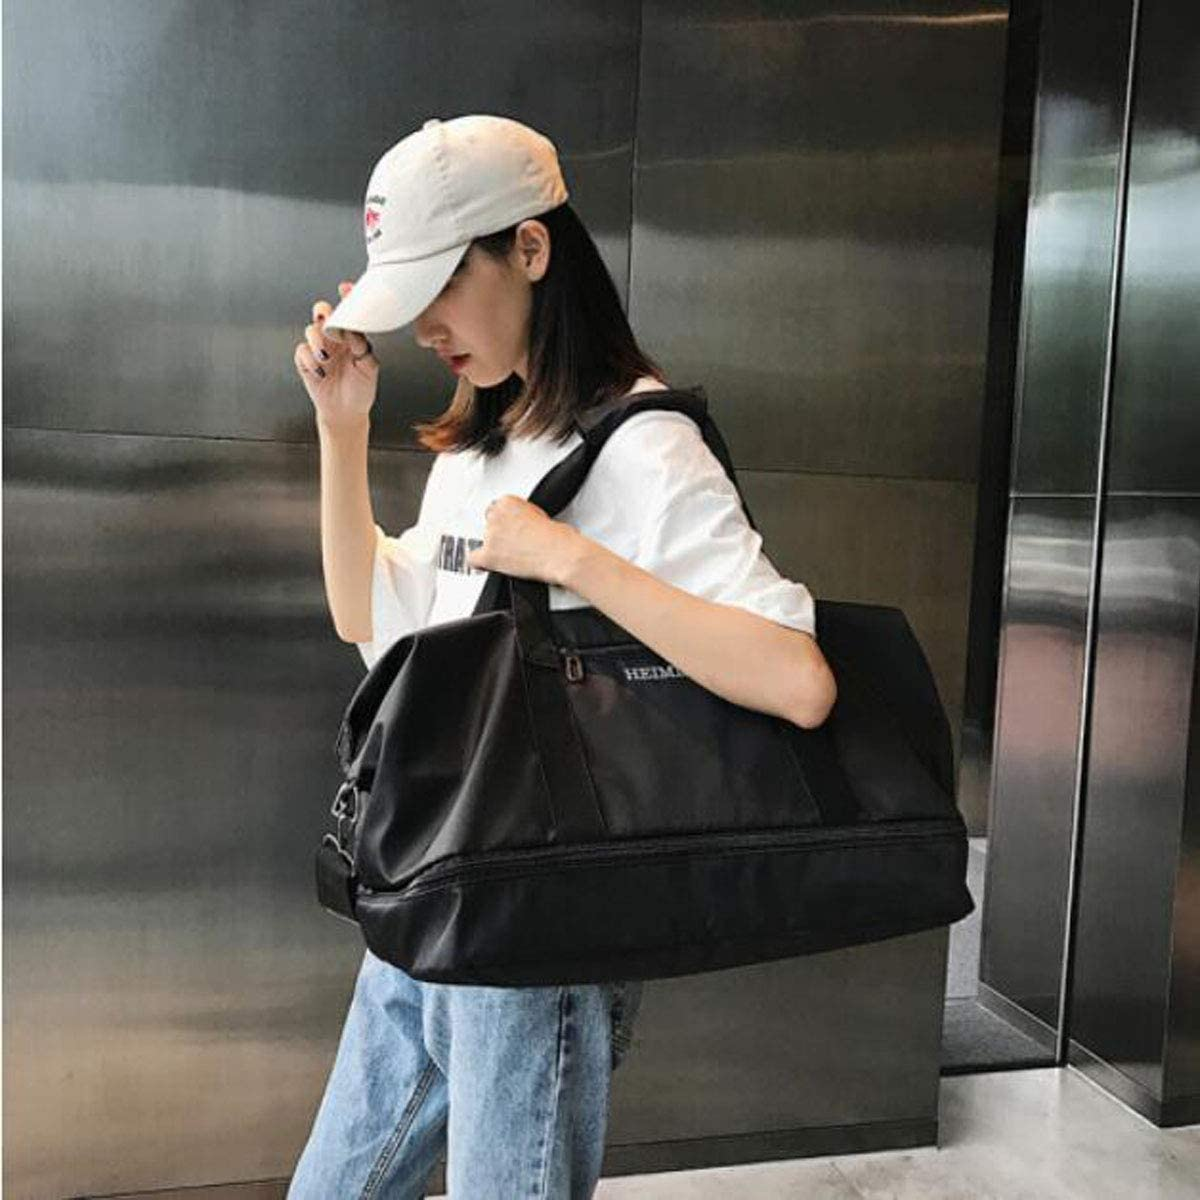 Business Fashion Casual Fashion Bag Black Size: 452428cm Travel Duffel Bag for Men and Women 2018 Practical Travel Bag ZHICHUANG Fitness Bag